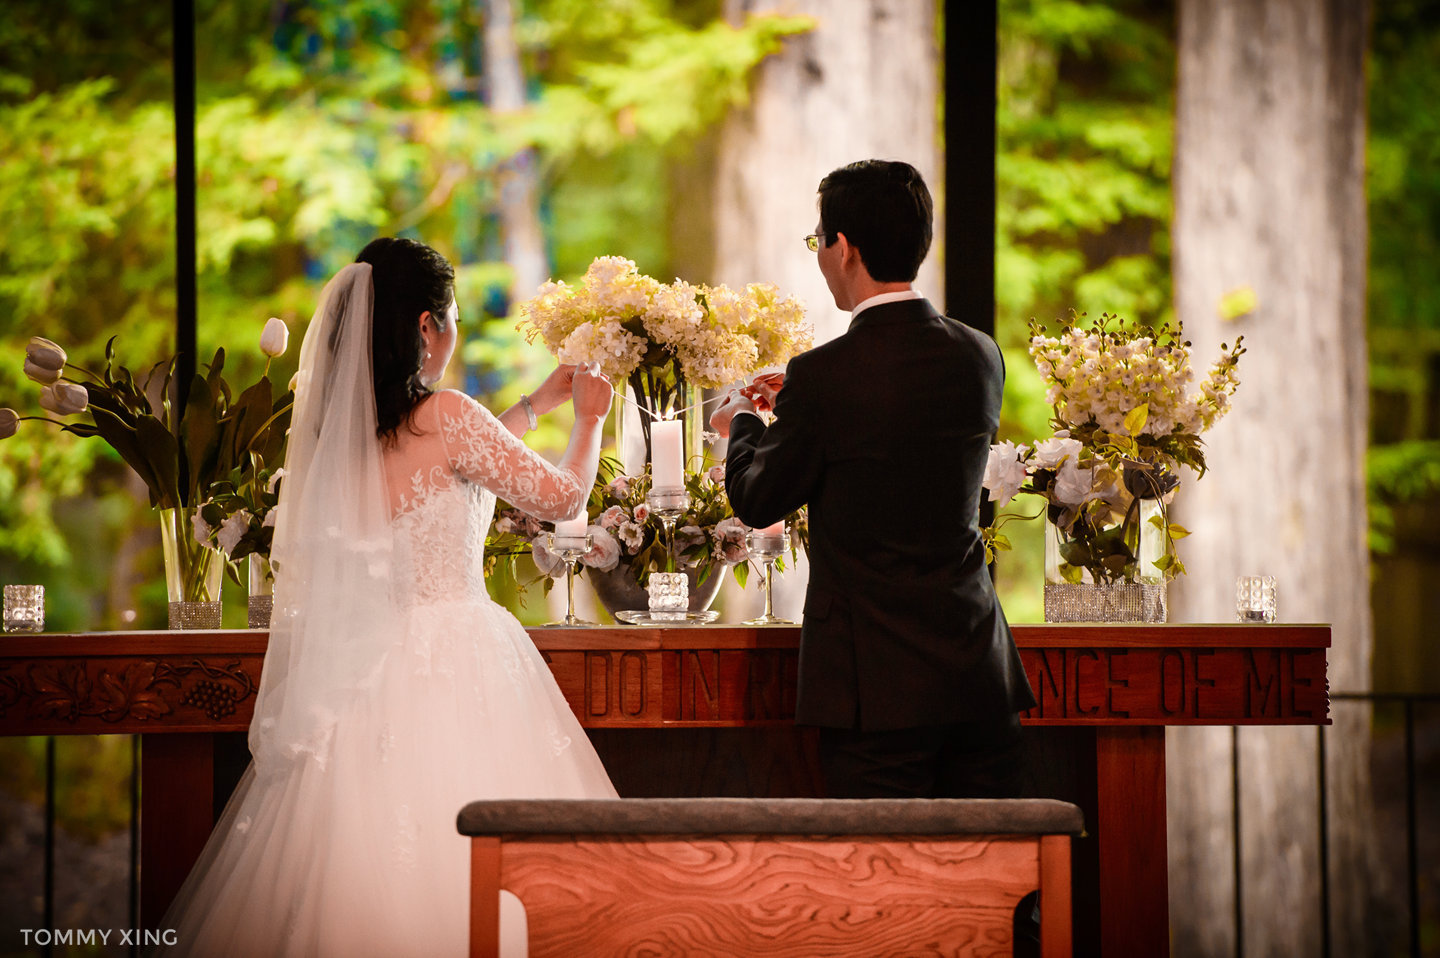 San Francisco Wedding Photography Valley Presbyterian Church WEDDING Tommy Xing Photography 洛杉矶旧金山婚礼婚纱照摄影师086.jpg